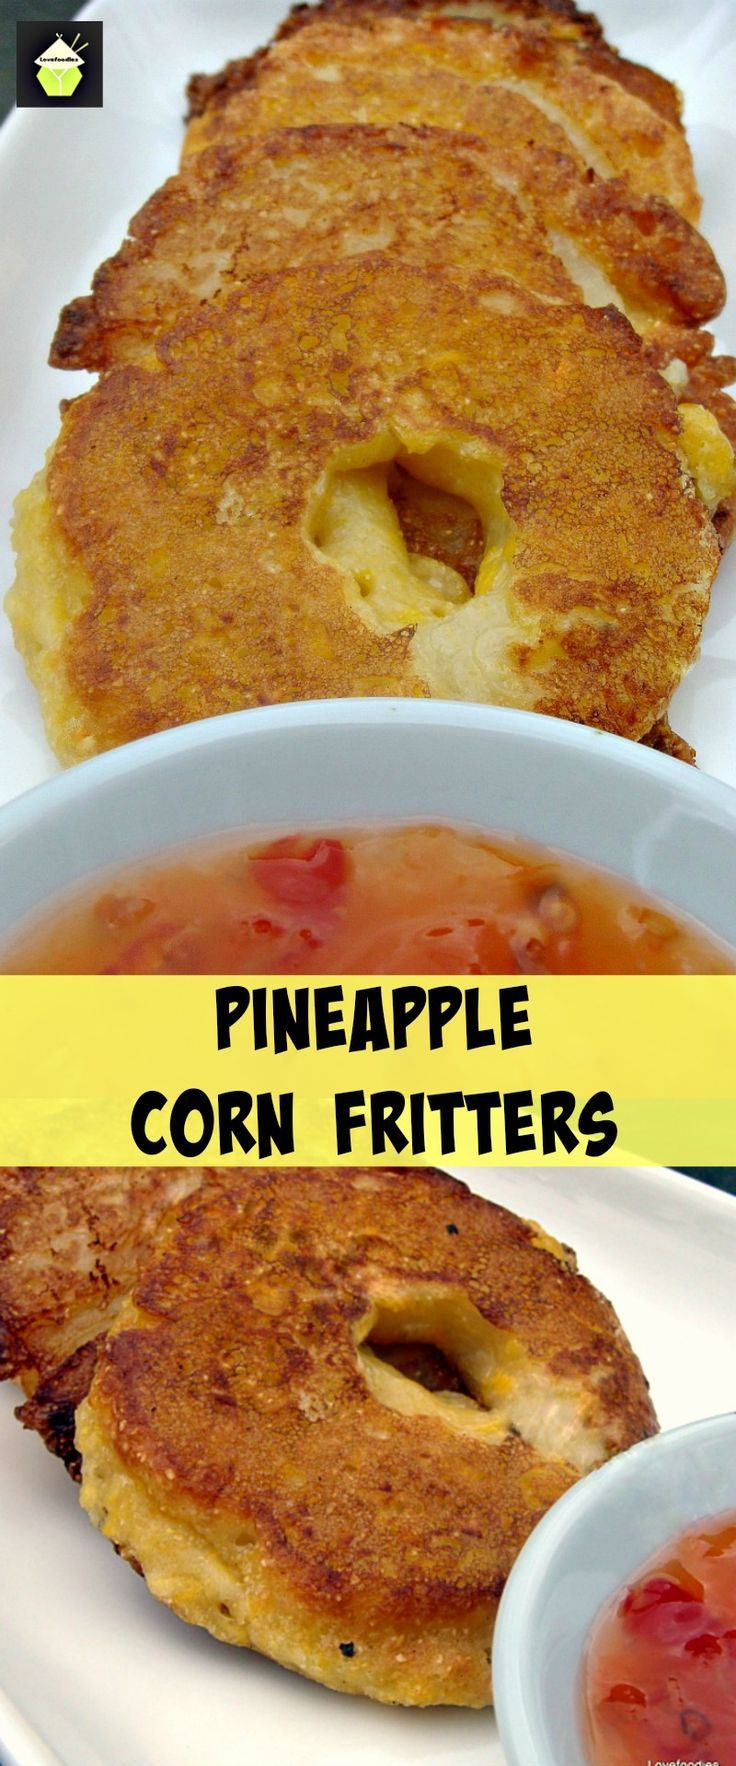 Pineapple Fritters-Not your average fritters but ones that will WOW your taste buds! If you love pineapples then you will love these. Great as a side dish or for parties, buffets, desserts or just to eat all for yourself! #pineapple #corn #fritters #dessert